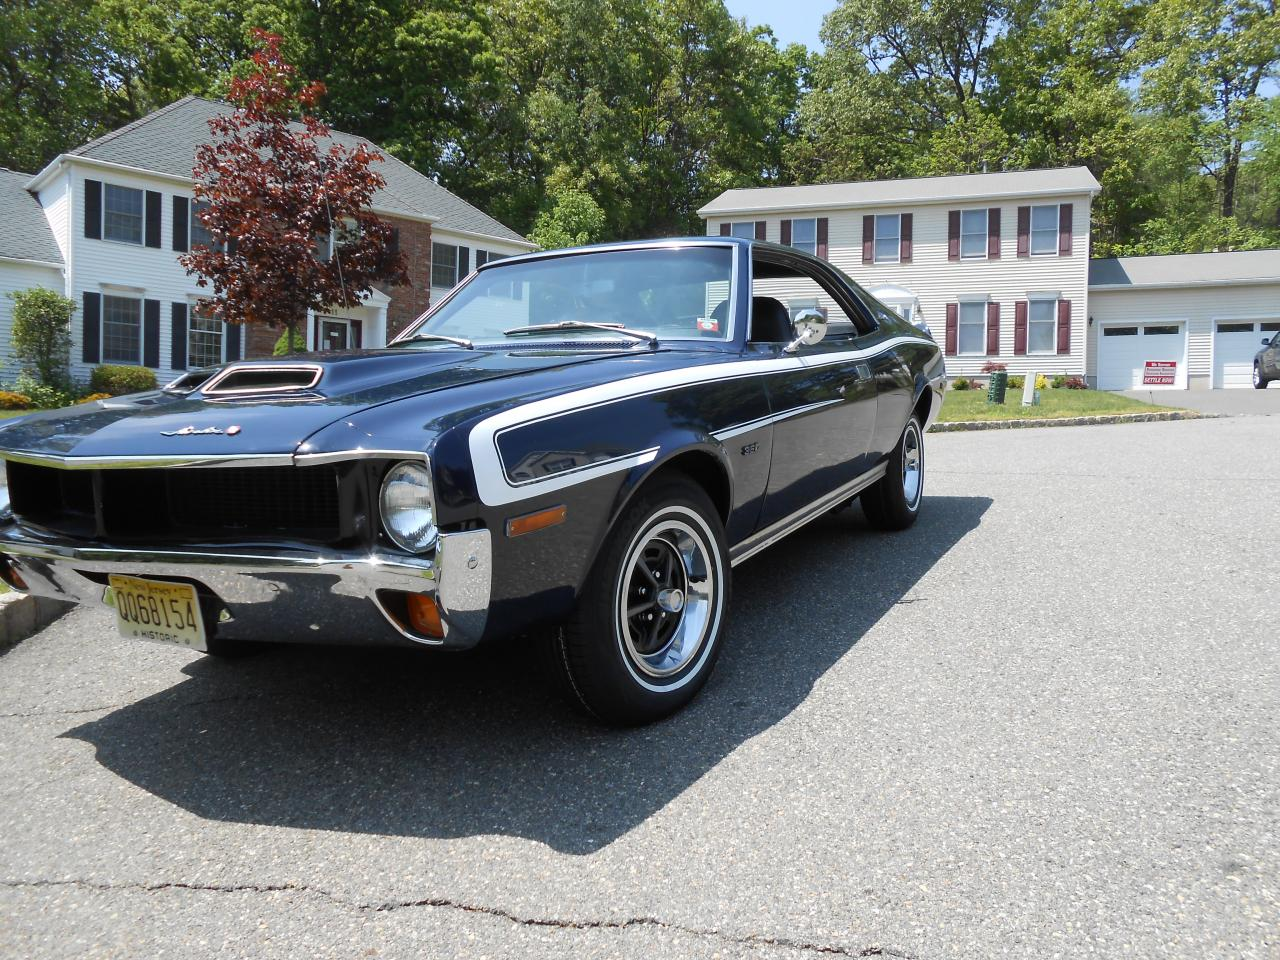 1970 amc javelin 4spd muscle car restored for sale for American classic motors for sale